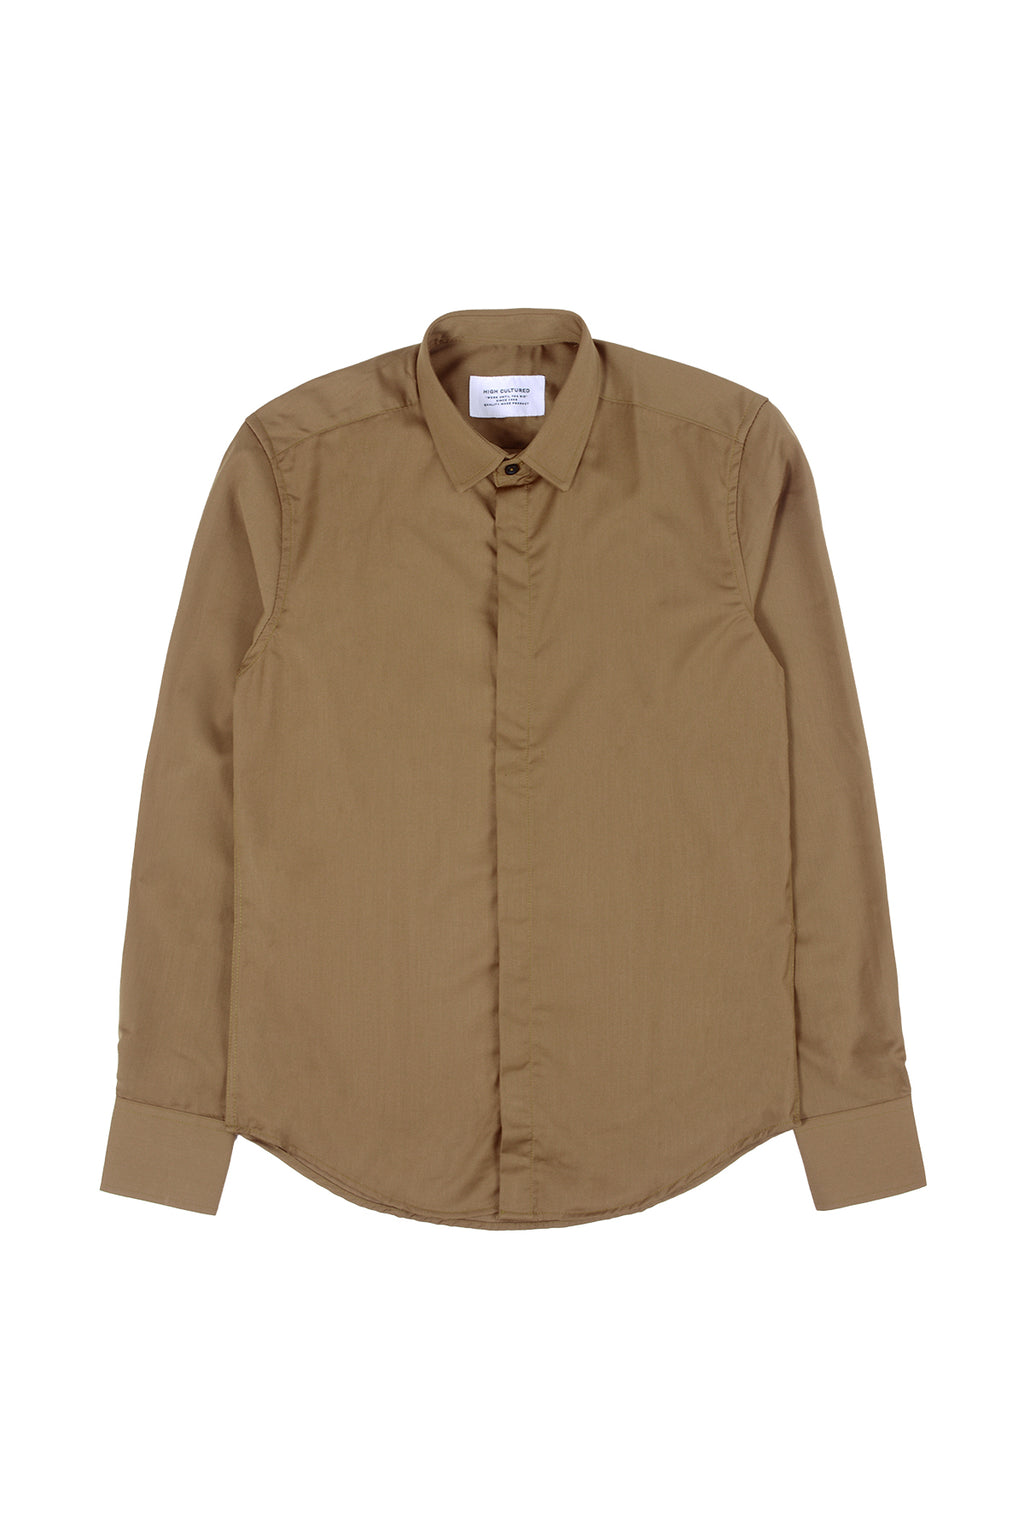 SLIM-FIT EXECUTIVE HIDDEN BUTTON SHIRT | CAMEL - 66